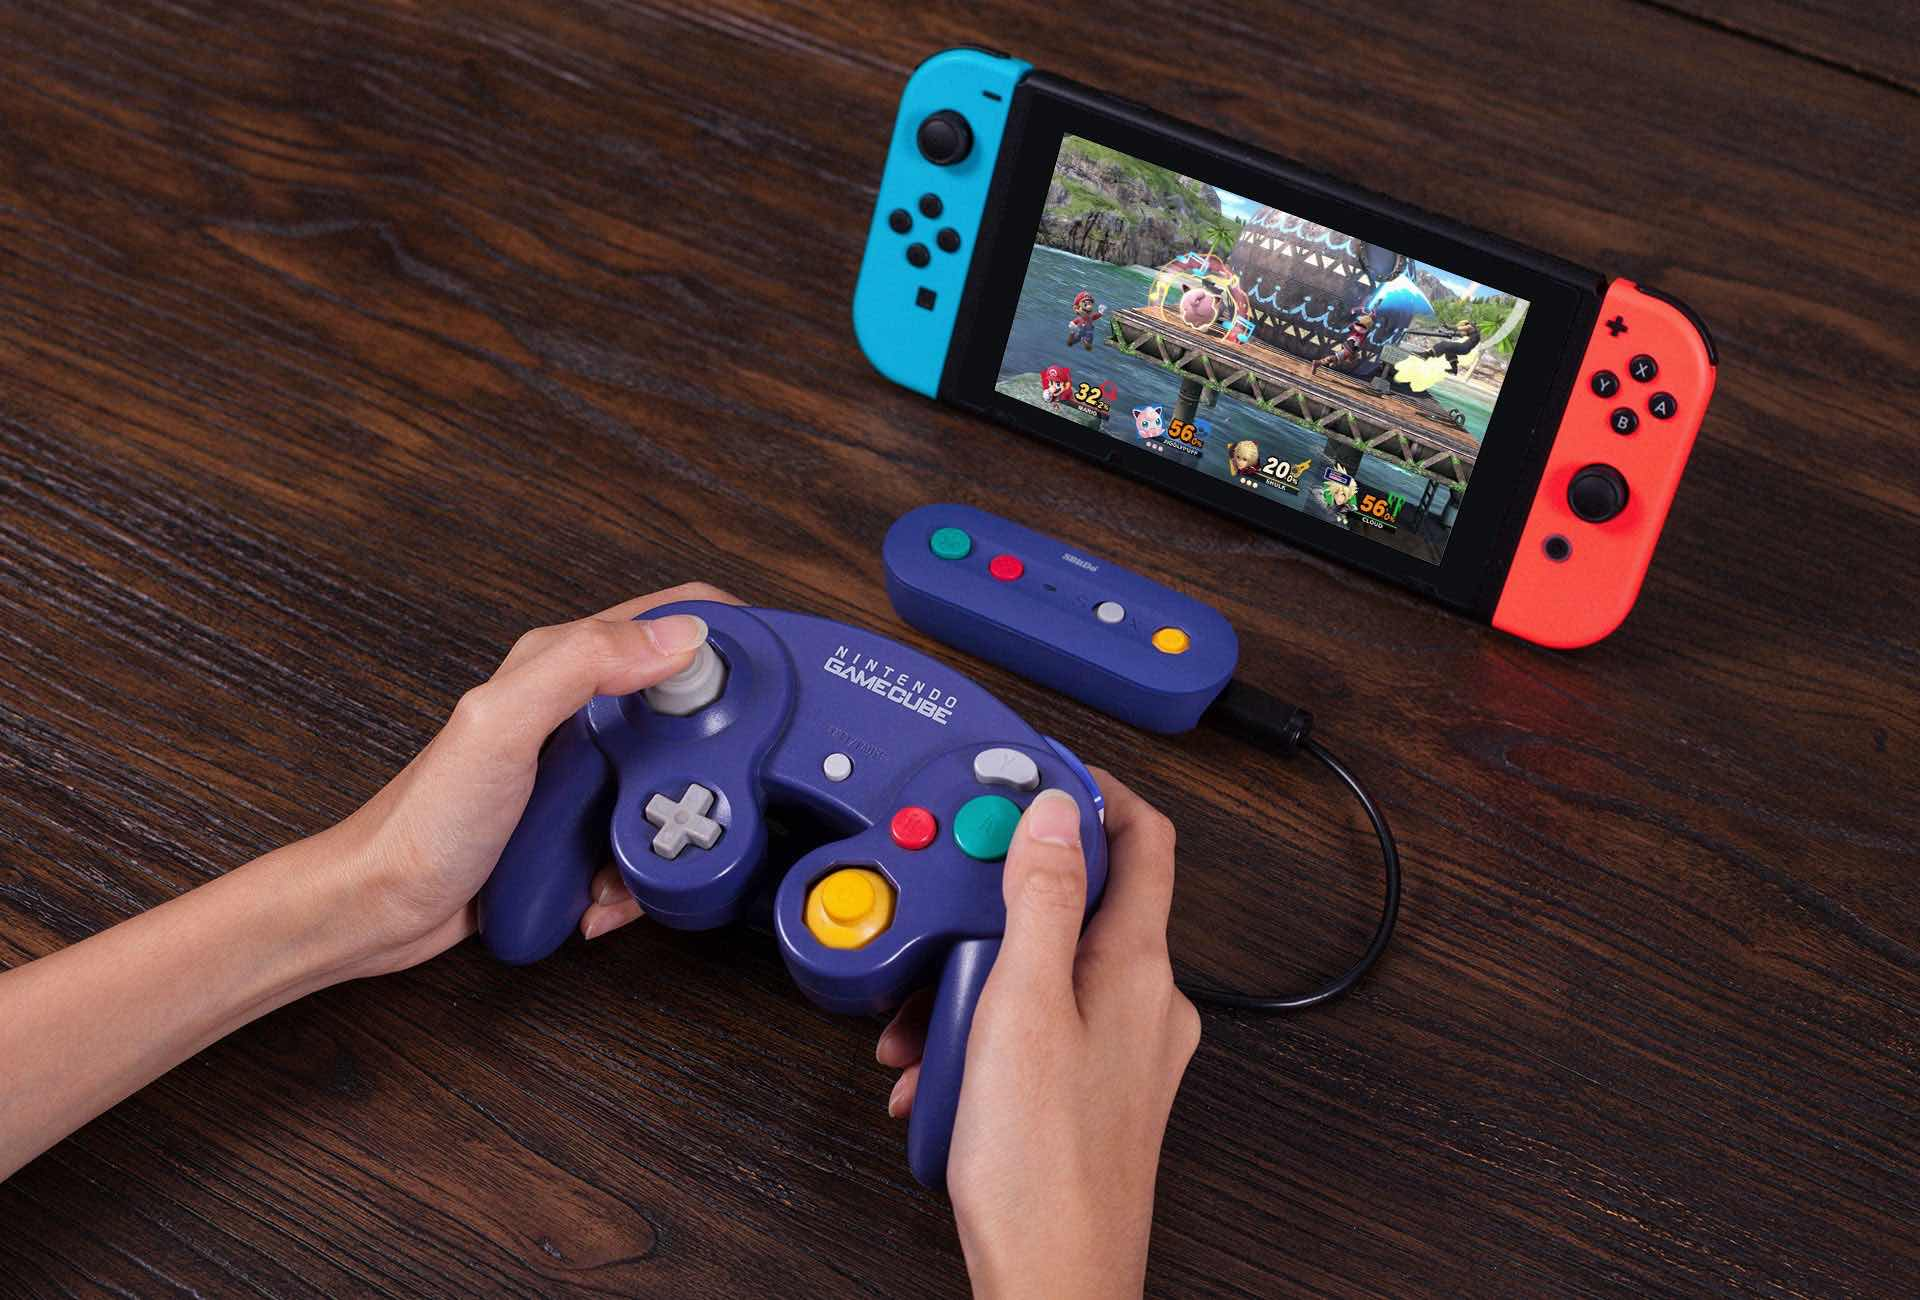 8bitdo-gbros-wireless-gamecube-adapter-for-nintendo-switch